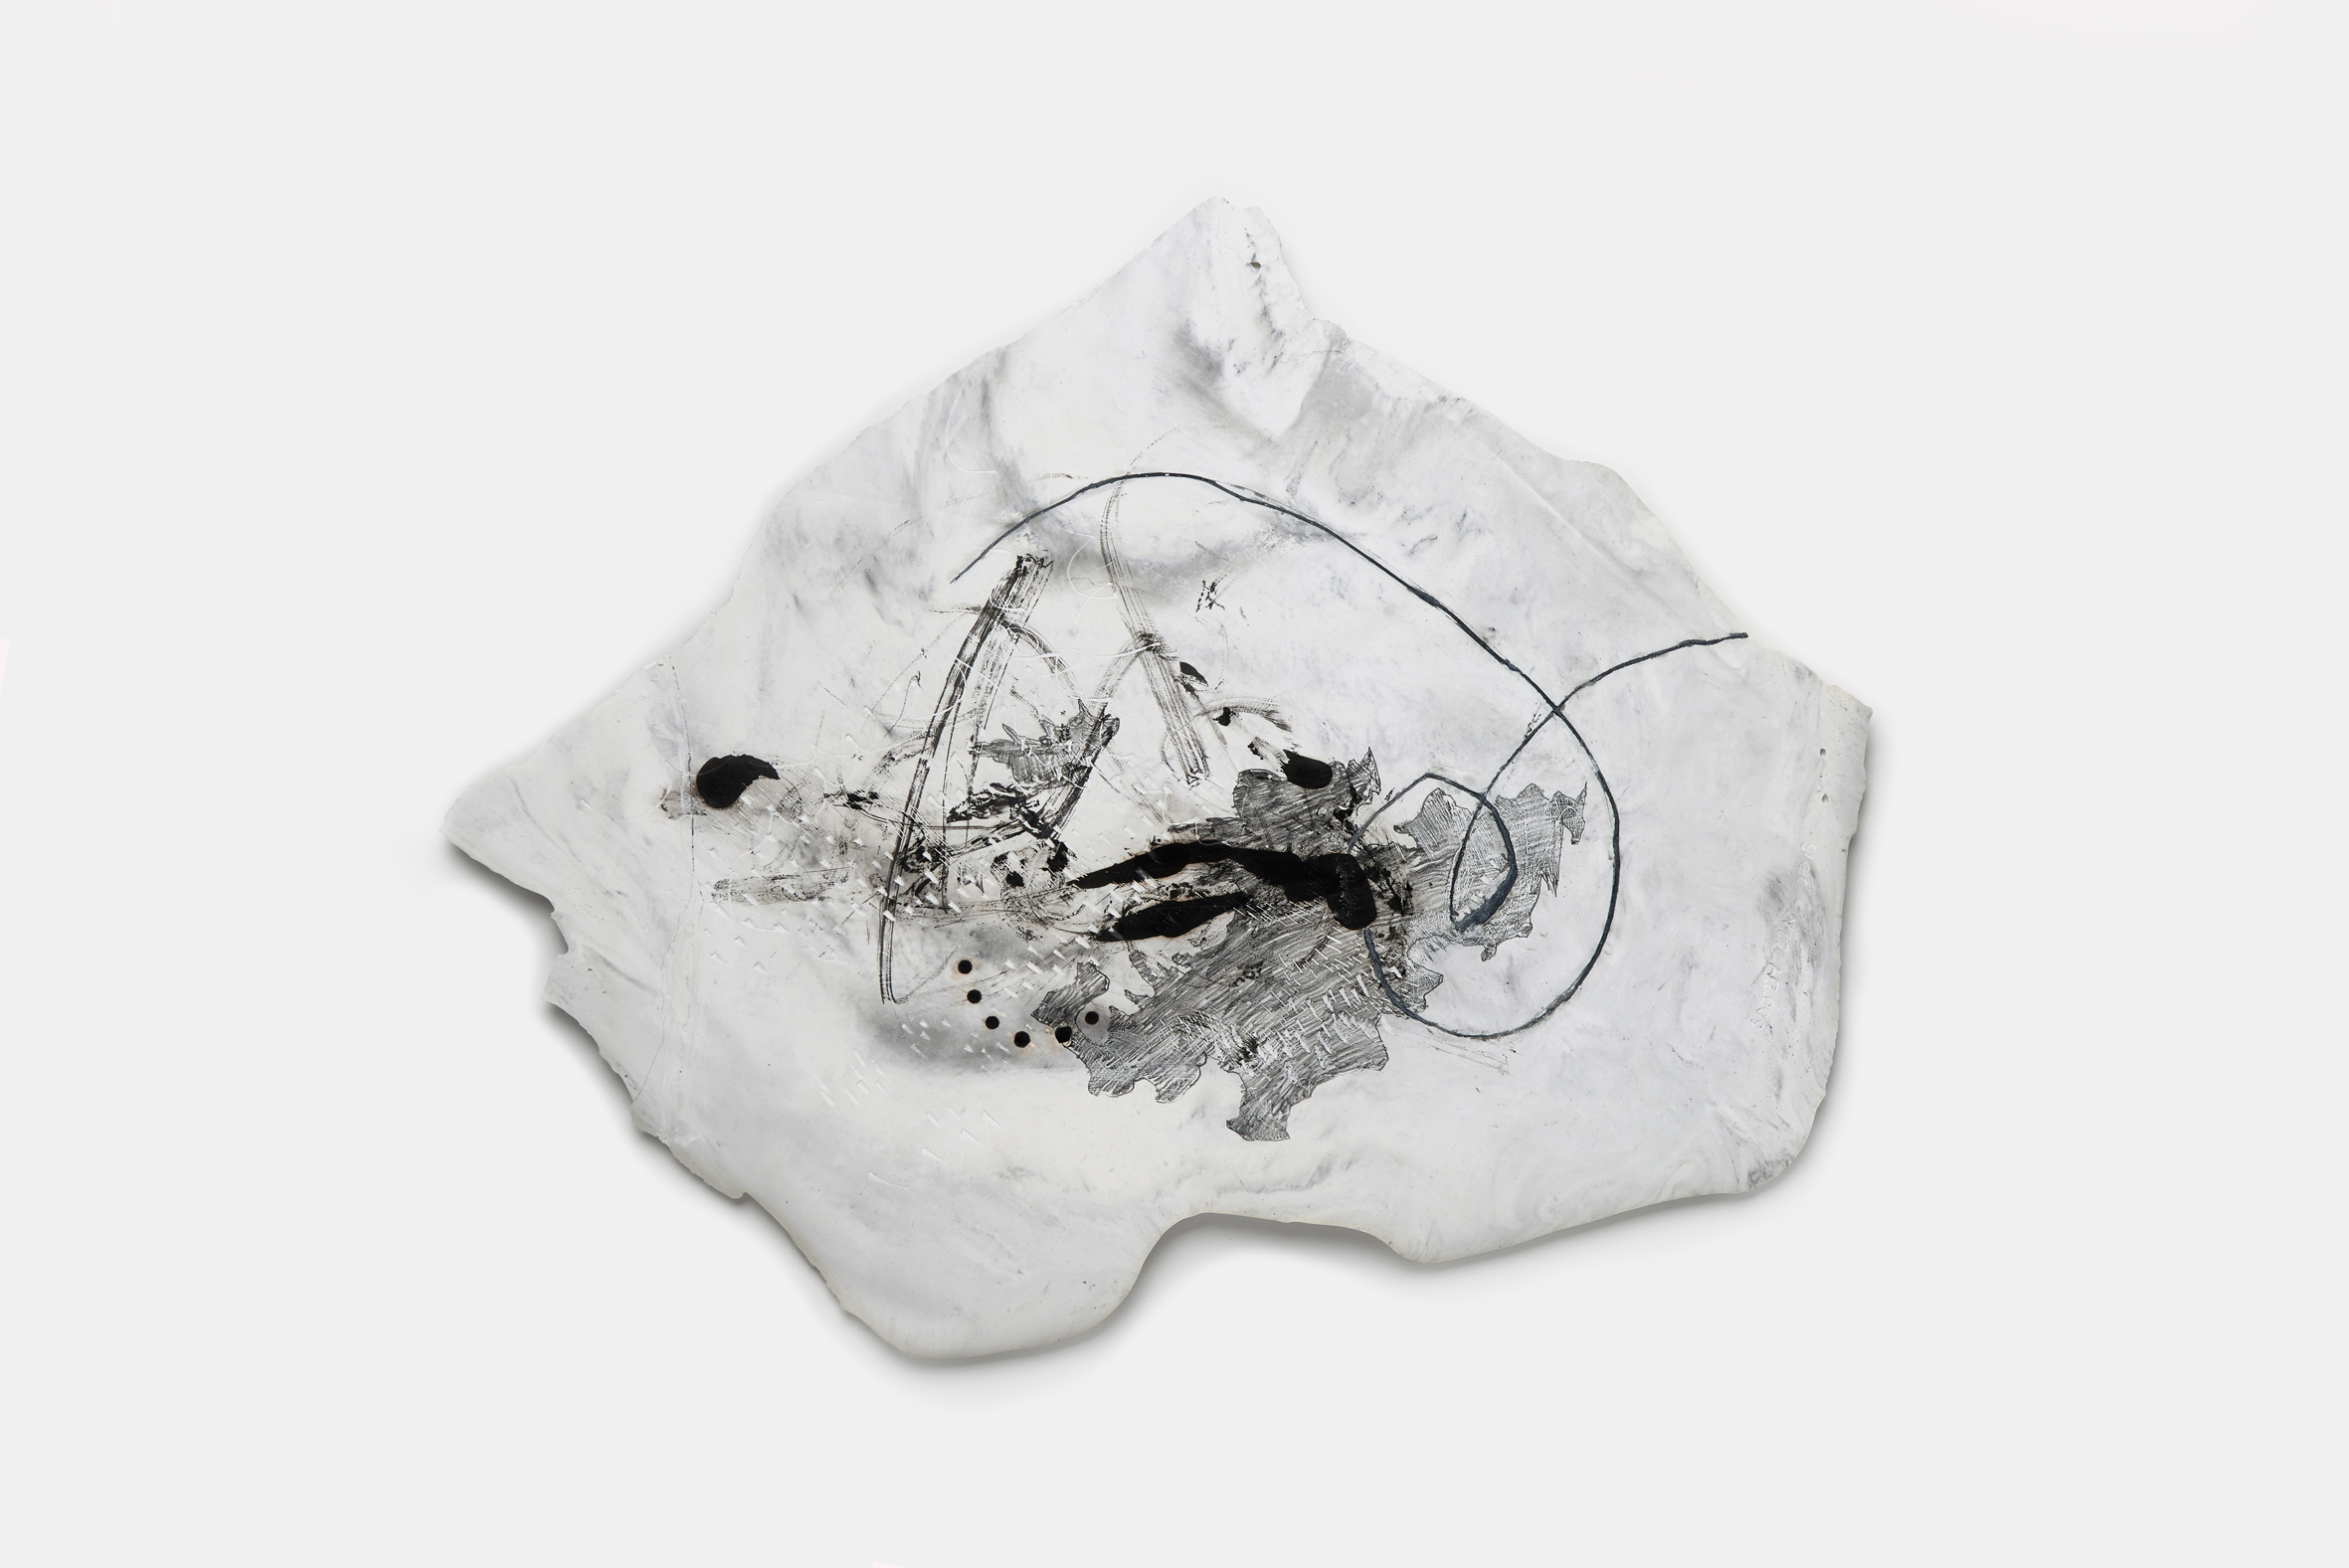 Vomit series #3  Engraving on plaster panel, mixture of ink and dry materials, silver sumi ink, pencil 41x36cm 2018